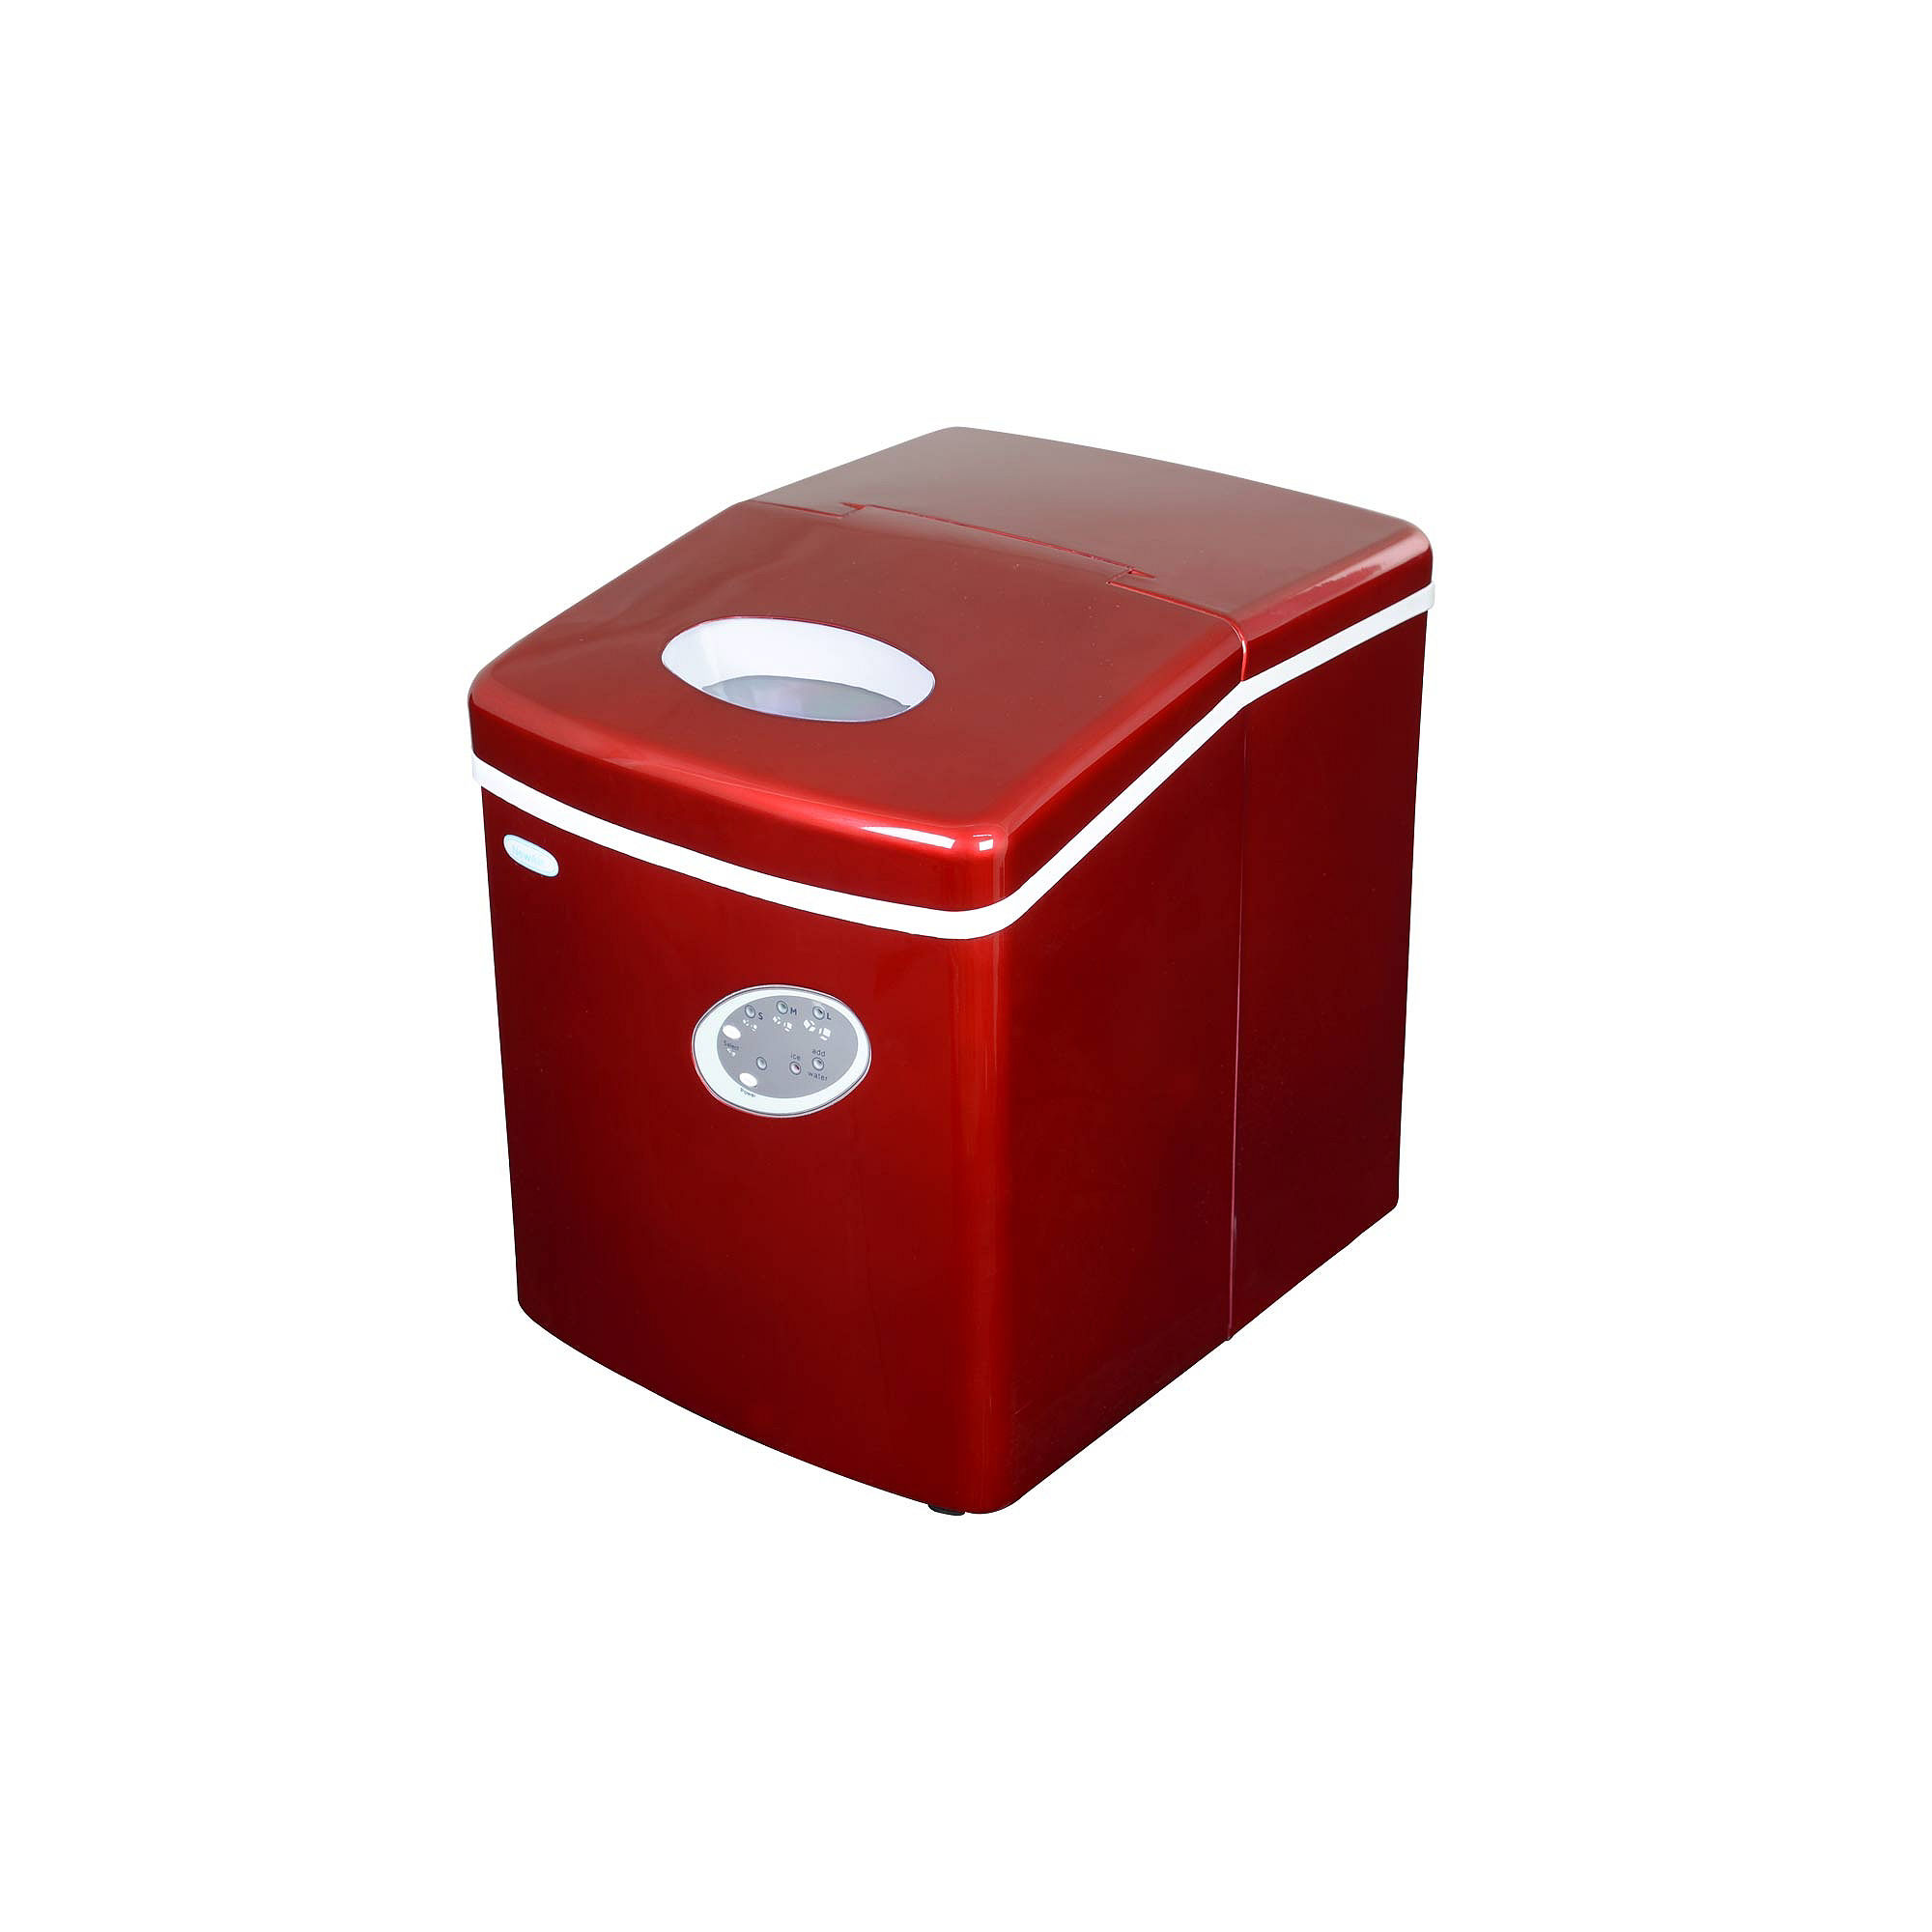 NewAir AI-100R Portable Ice Maker